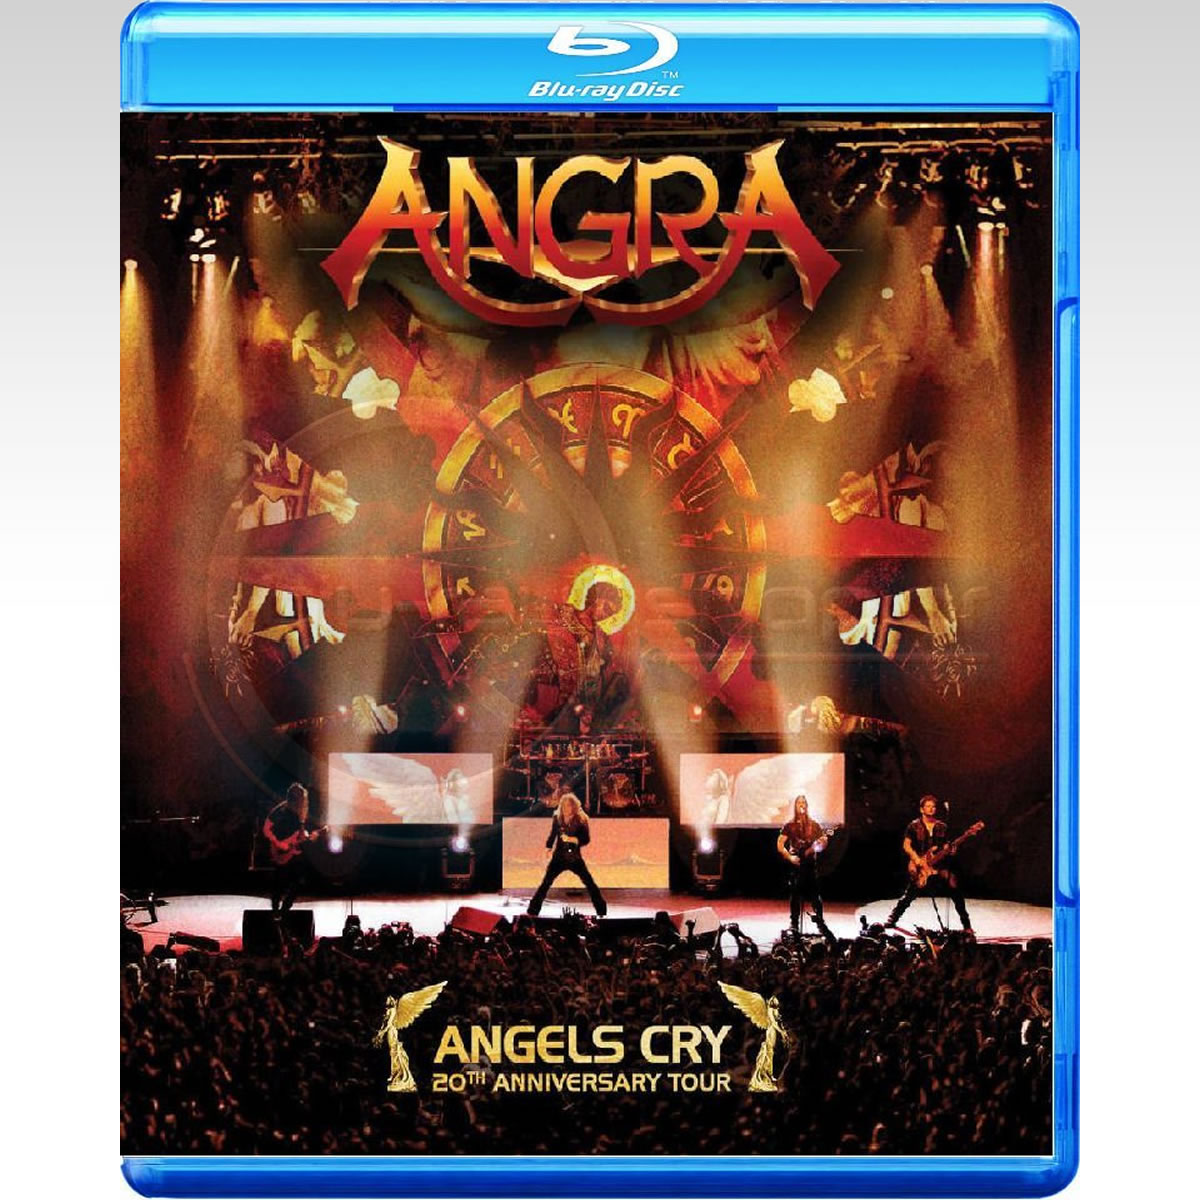 ANGRA ANGELS CRY: 20TH ANNIVERSARY LIVE (BLU-RAY)